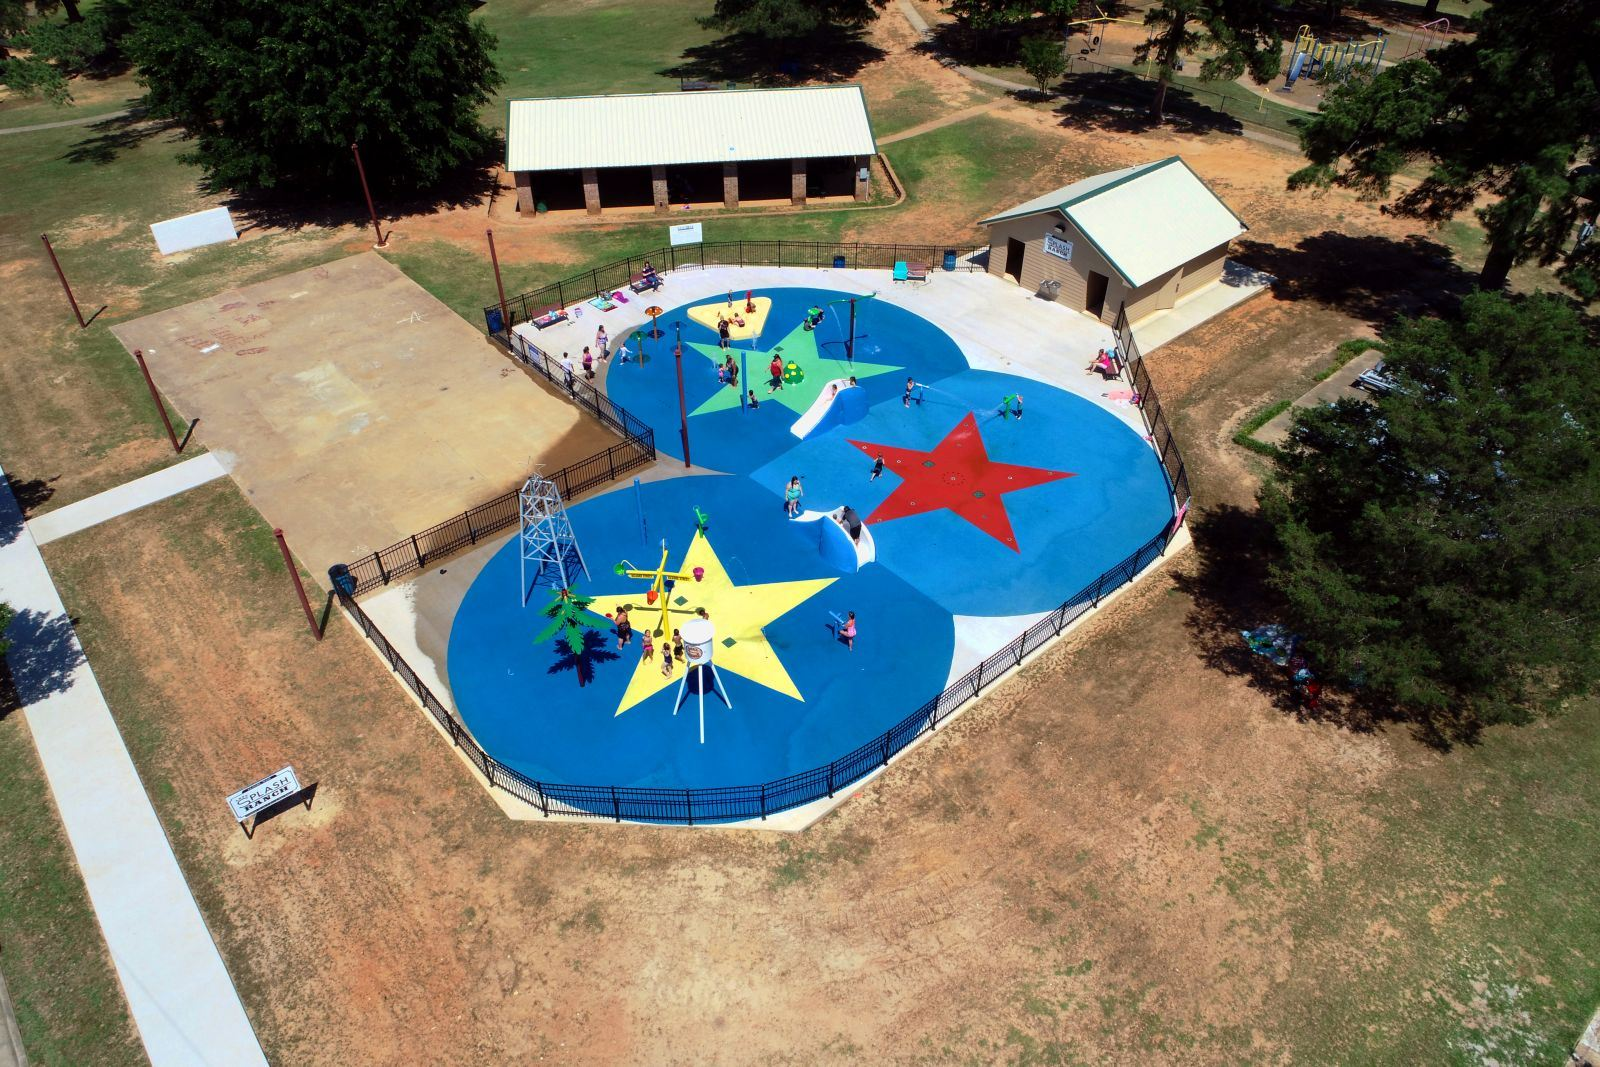 Aerial View of the Lazy Ranch Splash Park